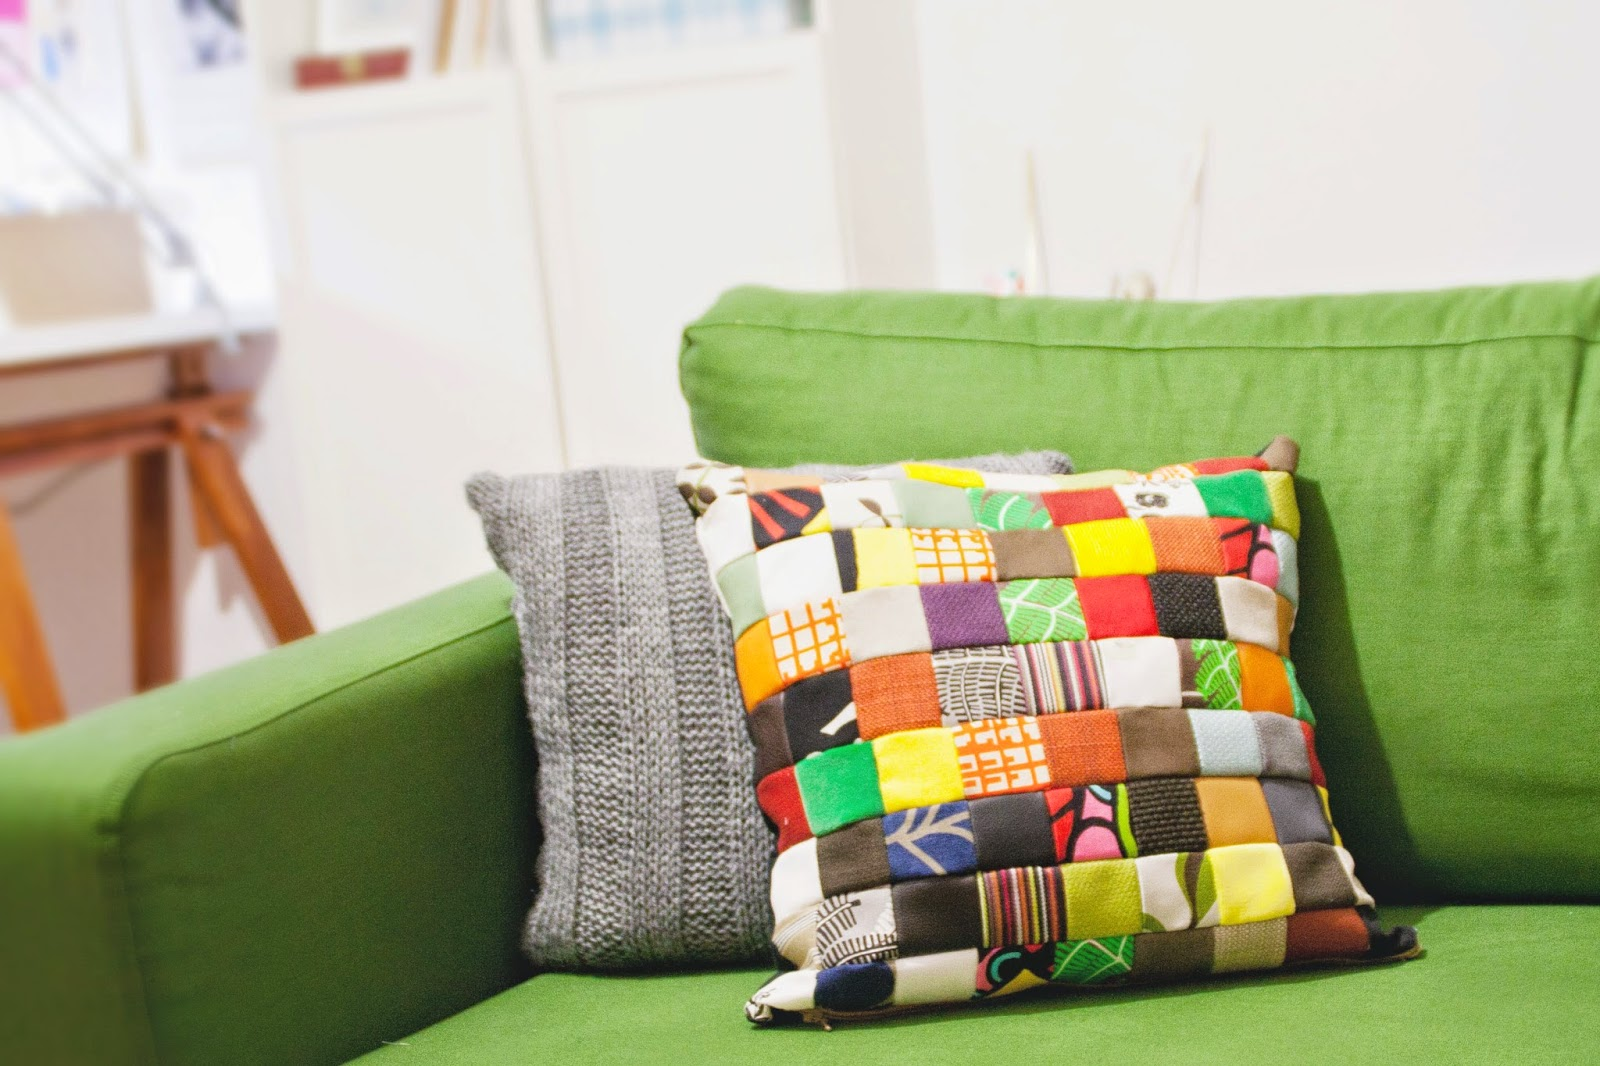 Diy Patchwork Pillow Case Made From Free Ikea Fabric Samples